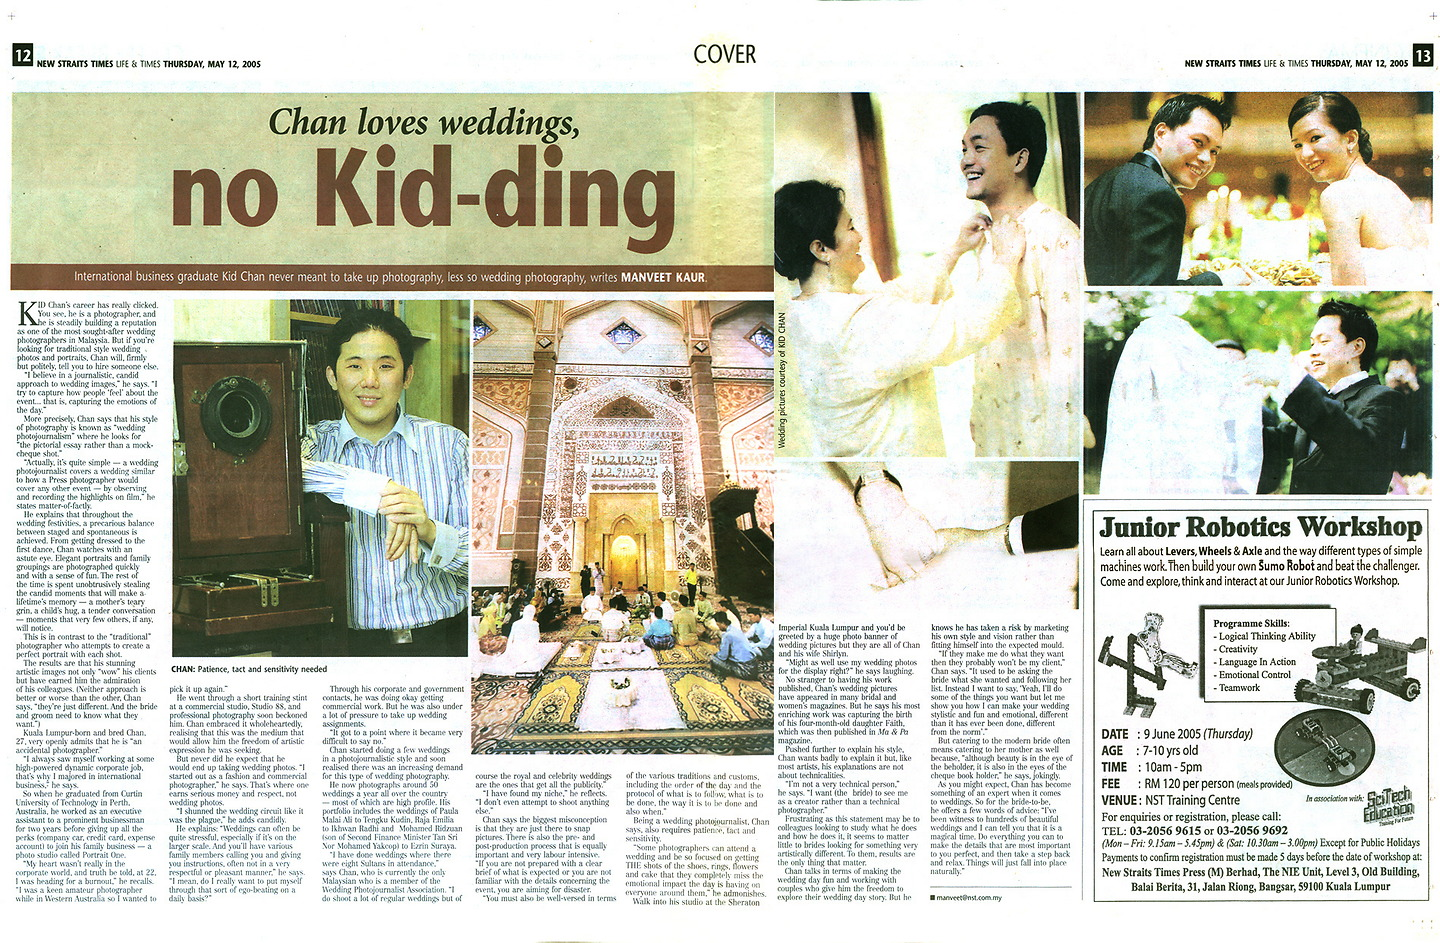 New Straits Times, Life & Times May 2005: 'Chan Loves Weddings, No Kid-ding'